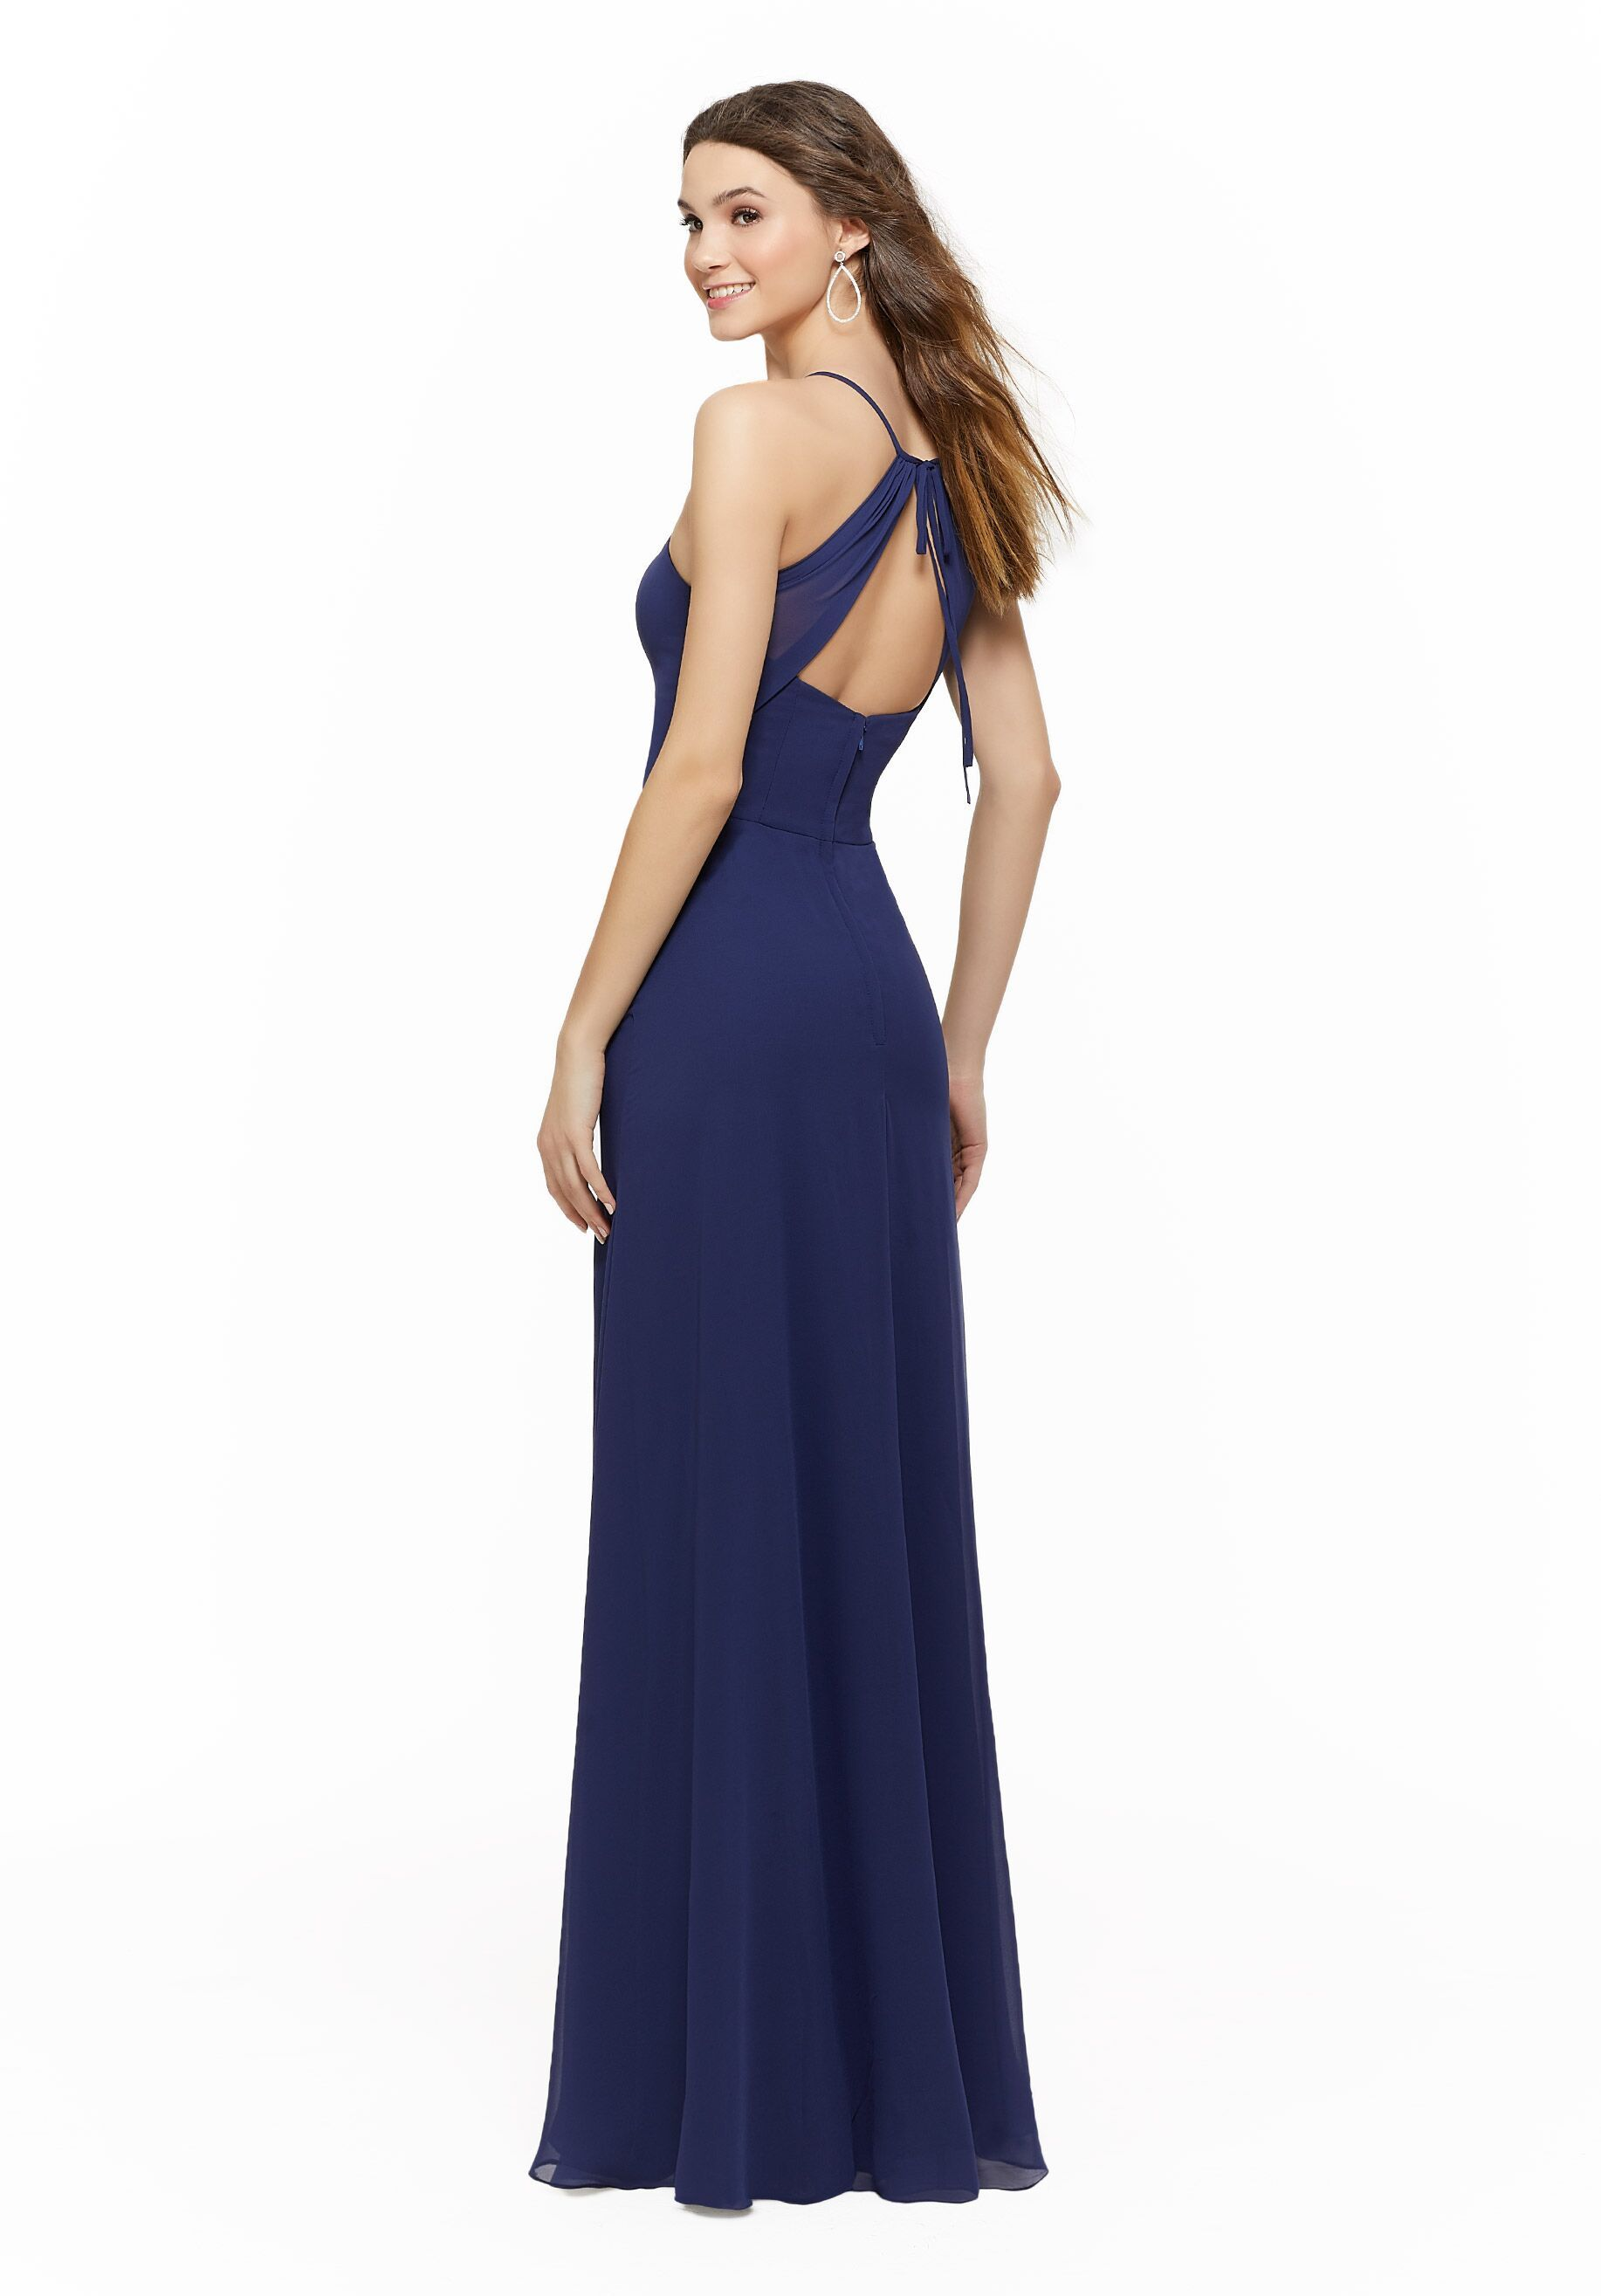 Sapphire Blue Morilee Chiffon Bridesmaid Dress With Open Back In 2020 Mori Lee Bridesmaid Dresses Stunning Bridesmaid Dresses Bridesmaid Dresses